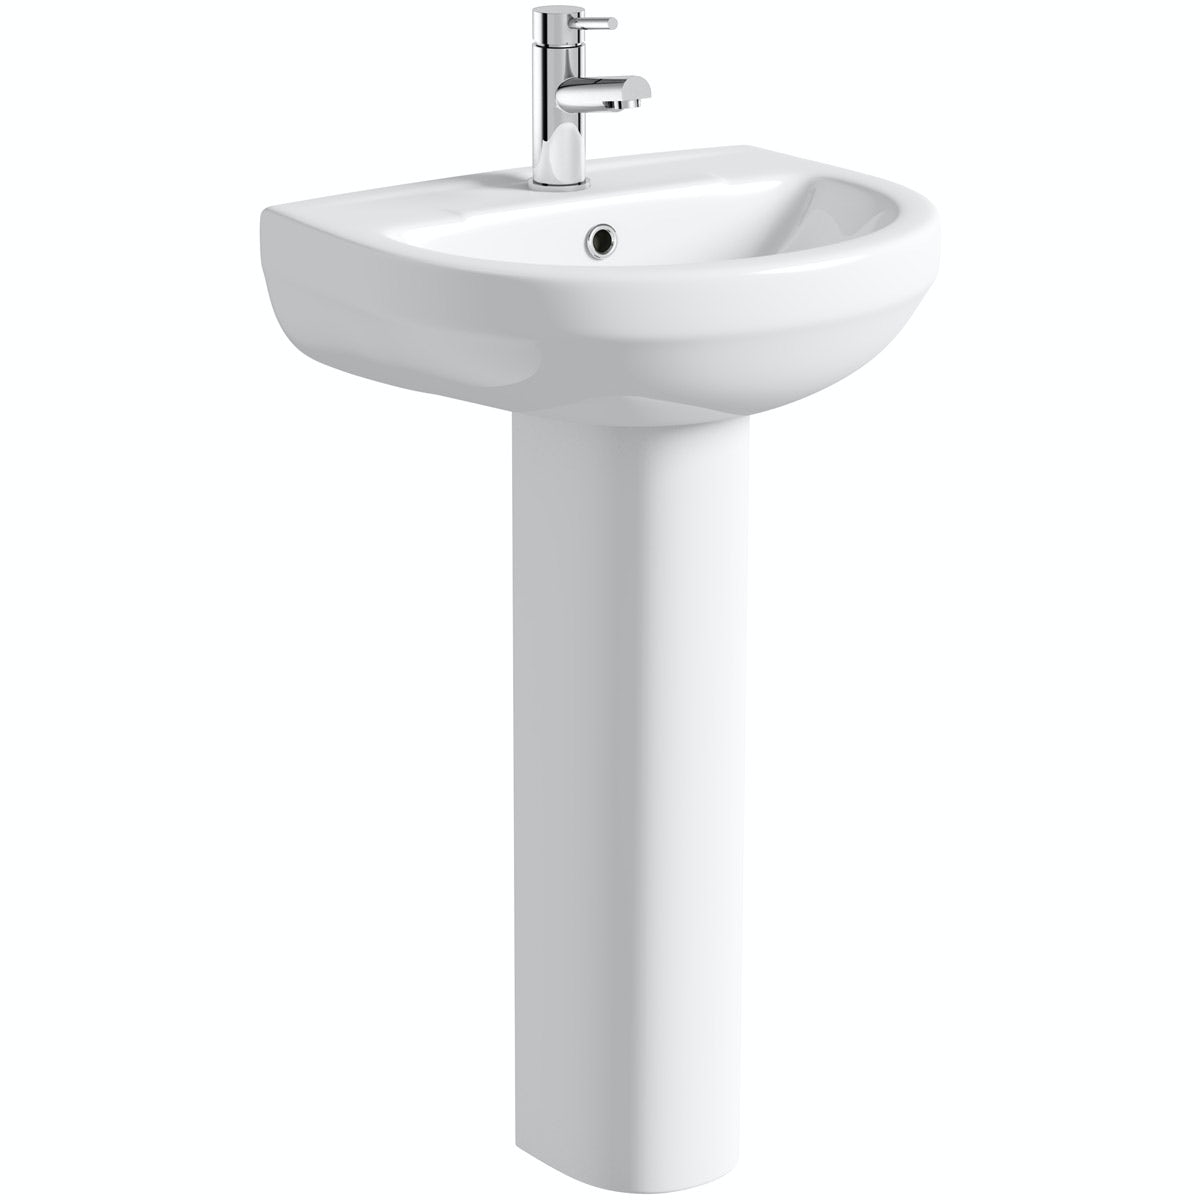 Orchard Wharfe 1 tap hole full pedestal basin